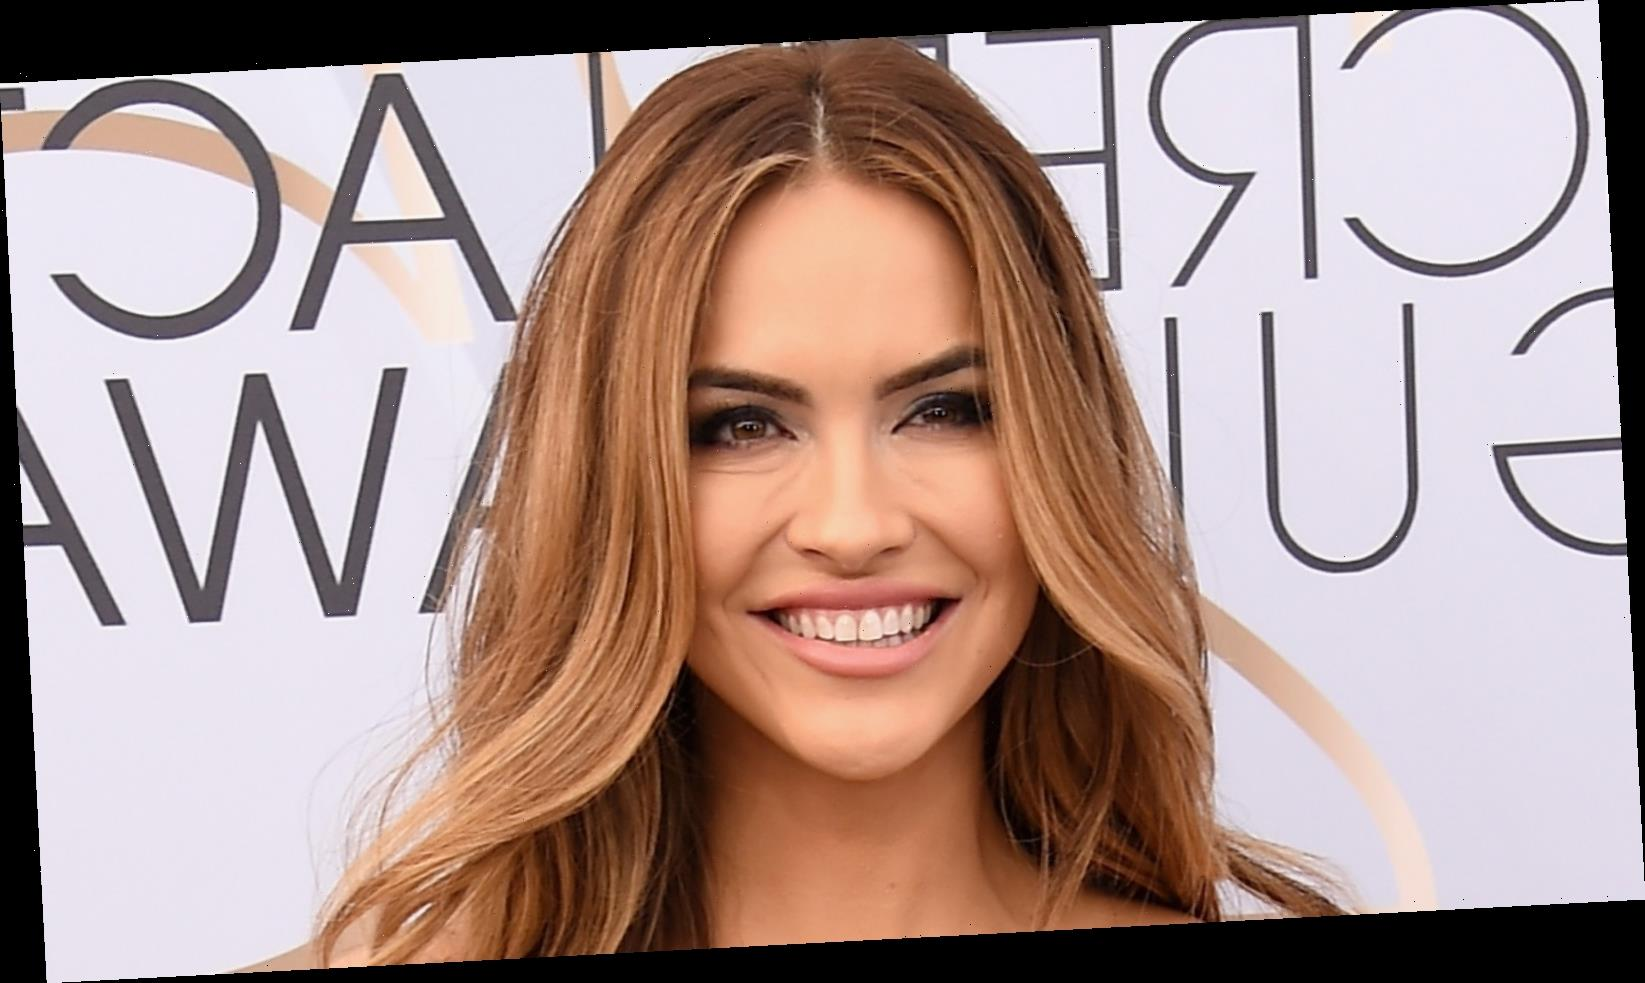 Could Chrishell Stause be the next Bachelorette?